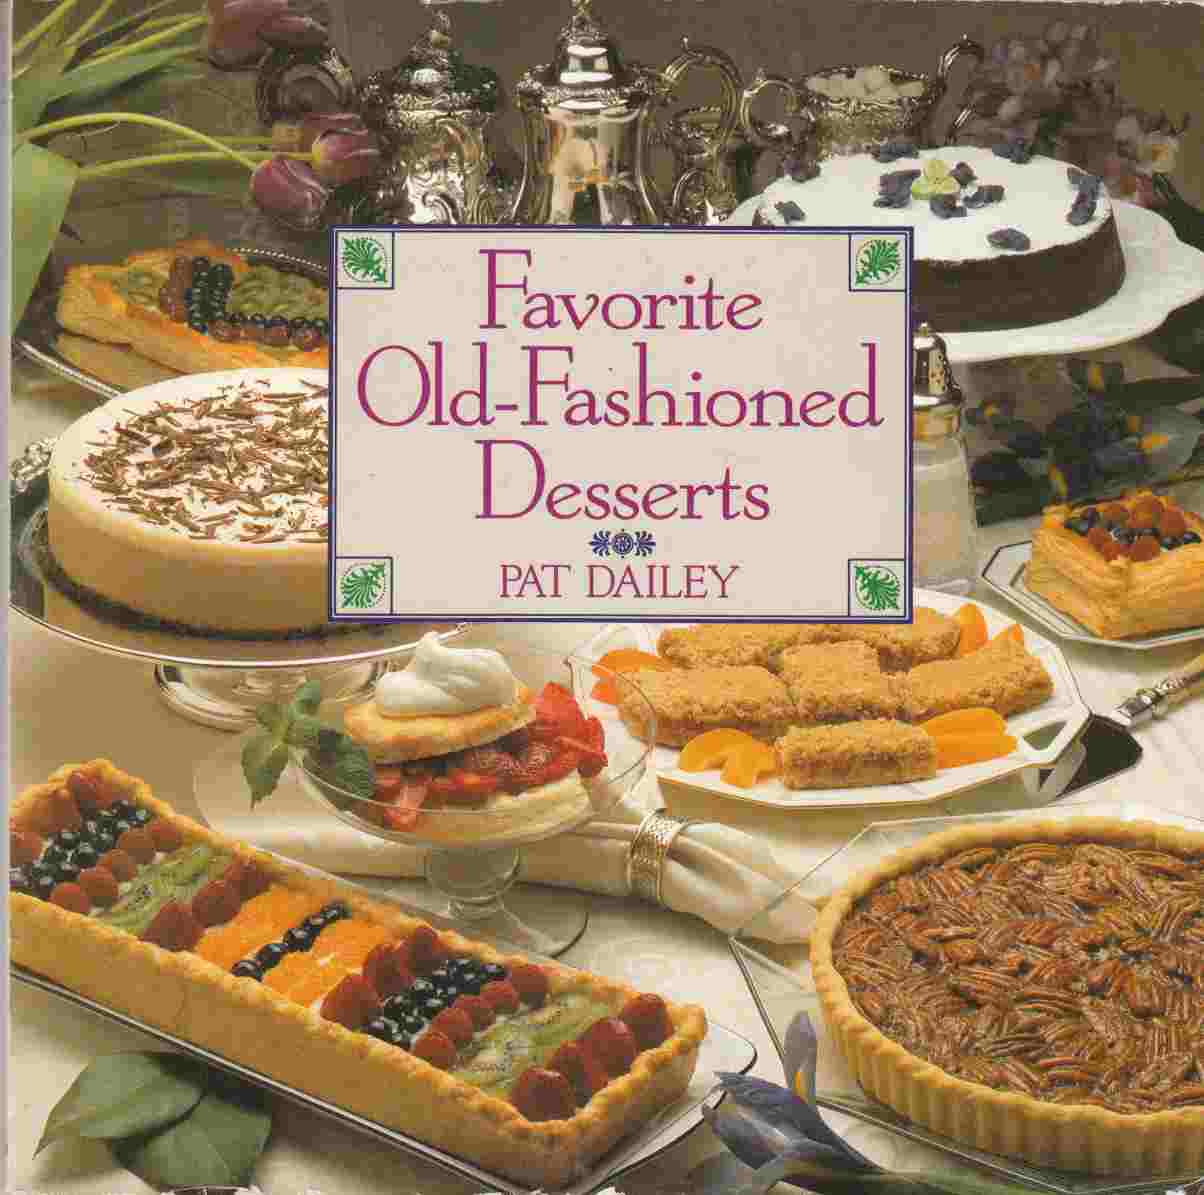 Image for Favorite Old-Fashioned Desserts